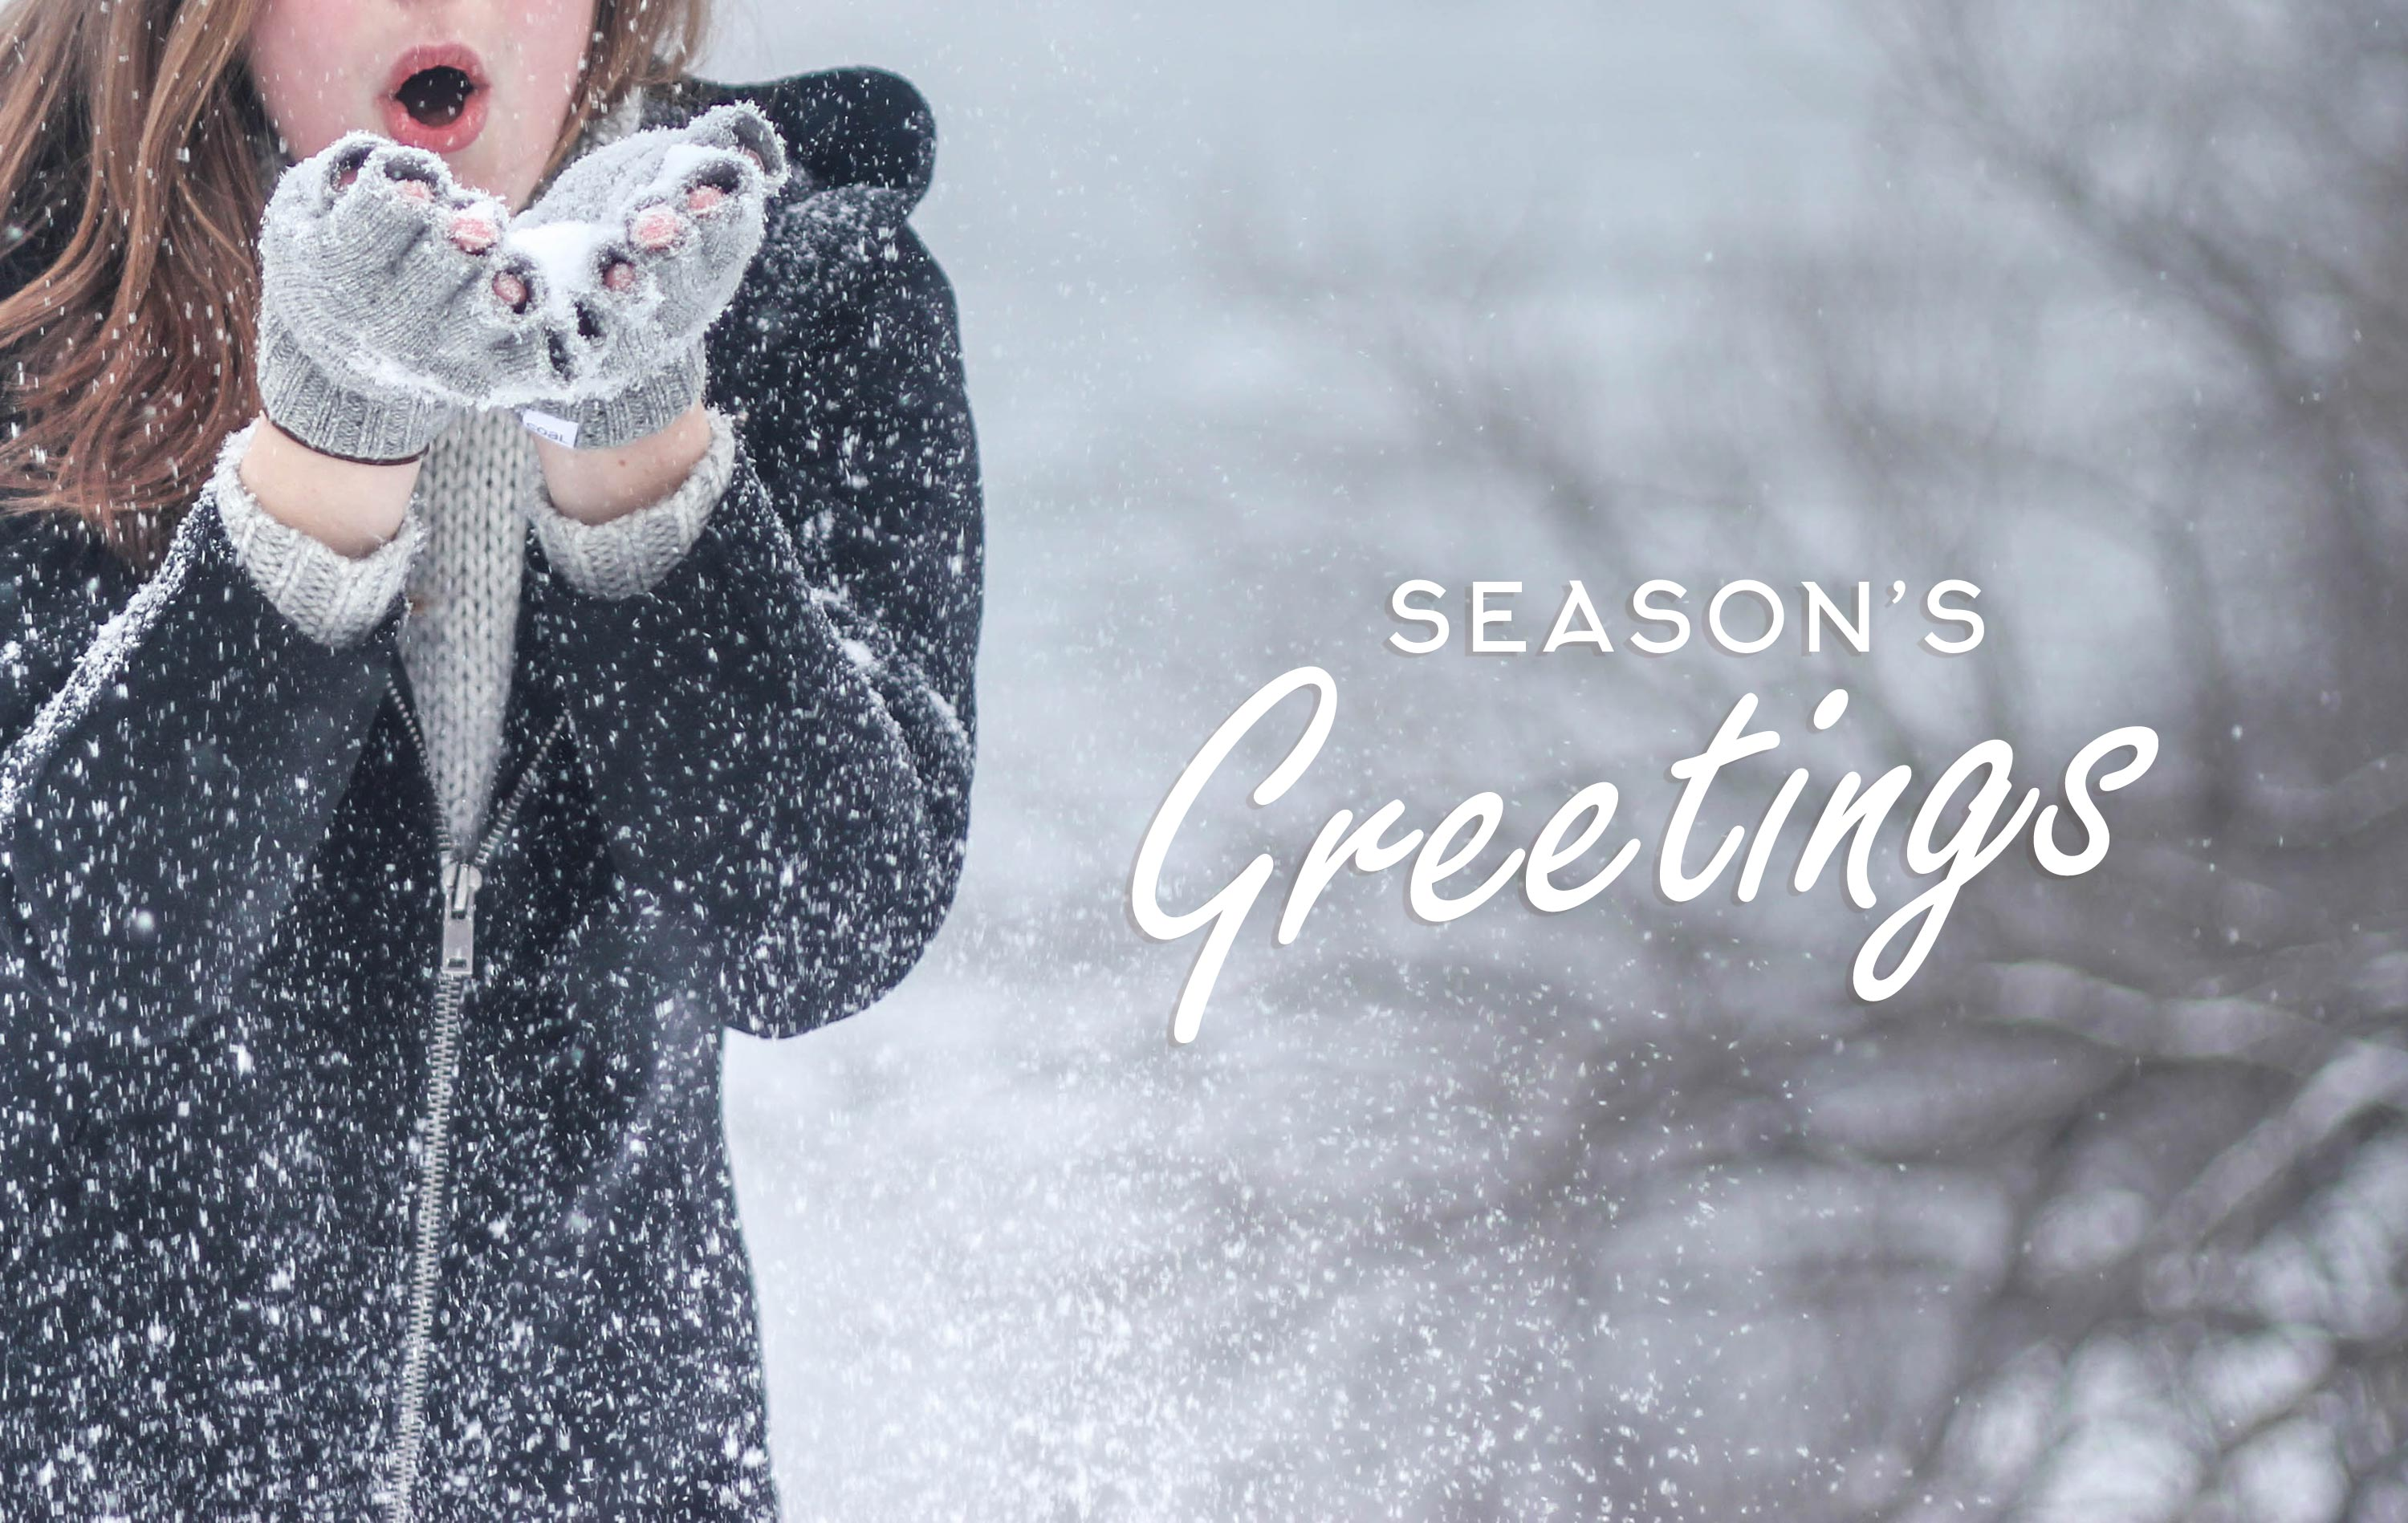 15 Seasons Greetings Cards Stock Images HD Wallpapers Winter 3000x1898